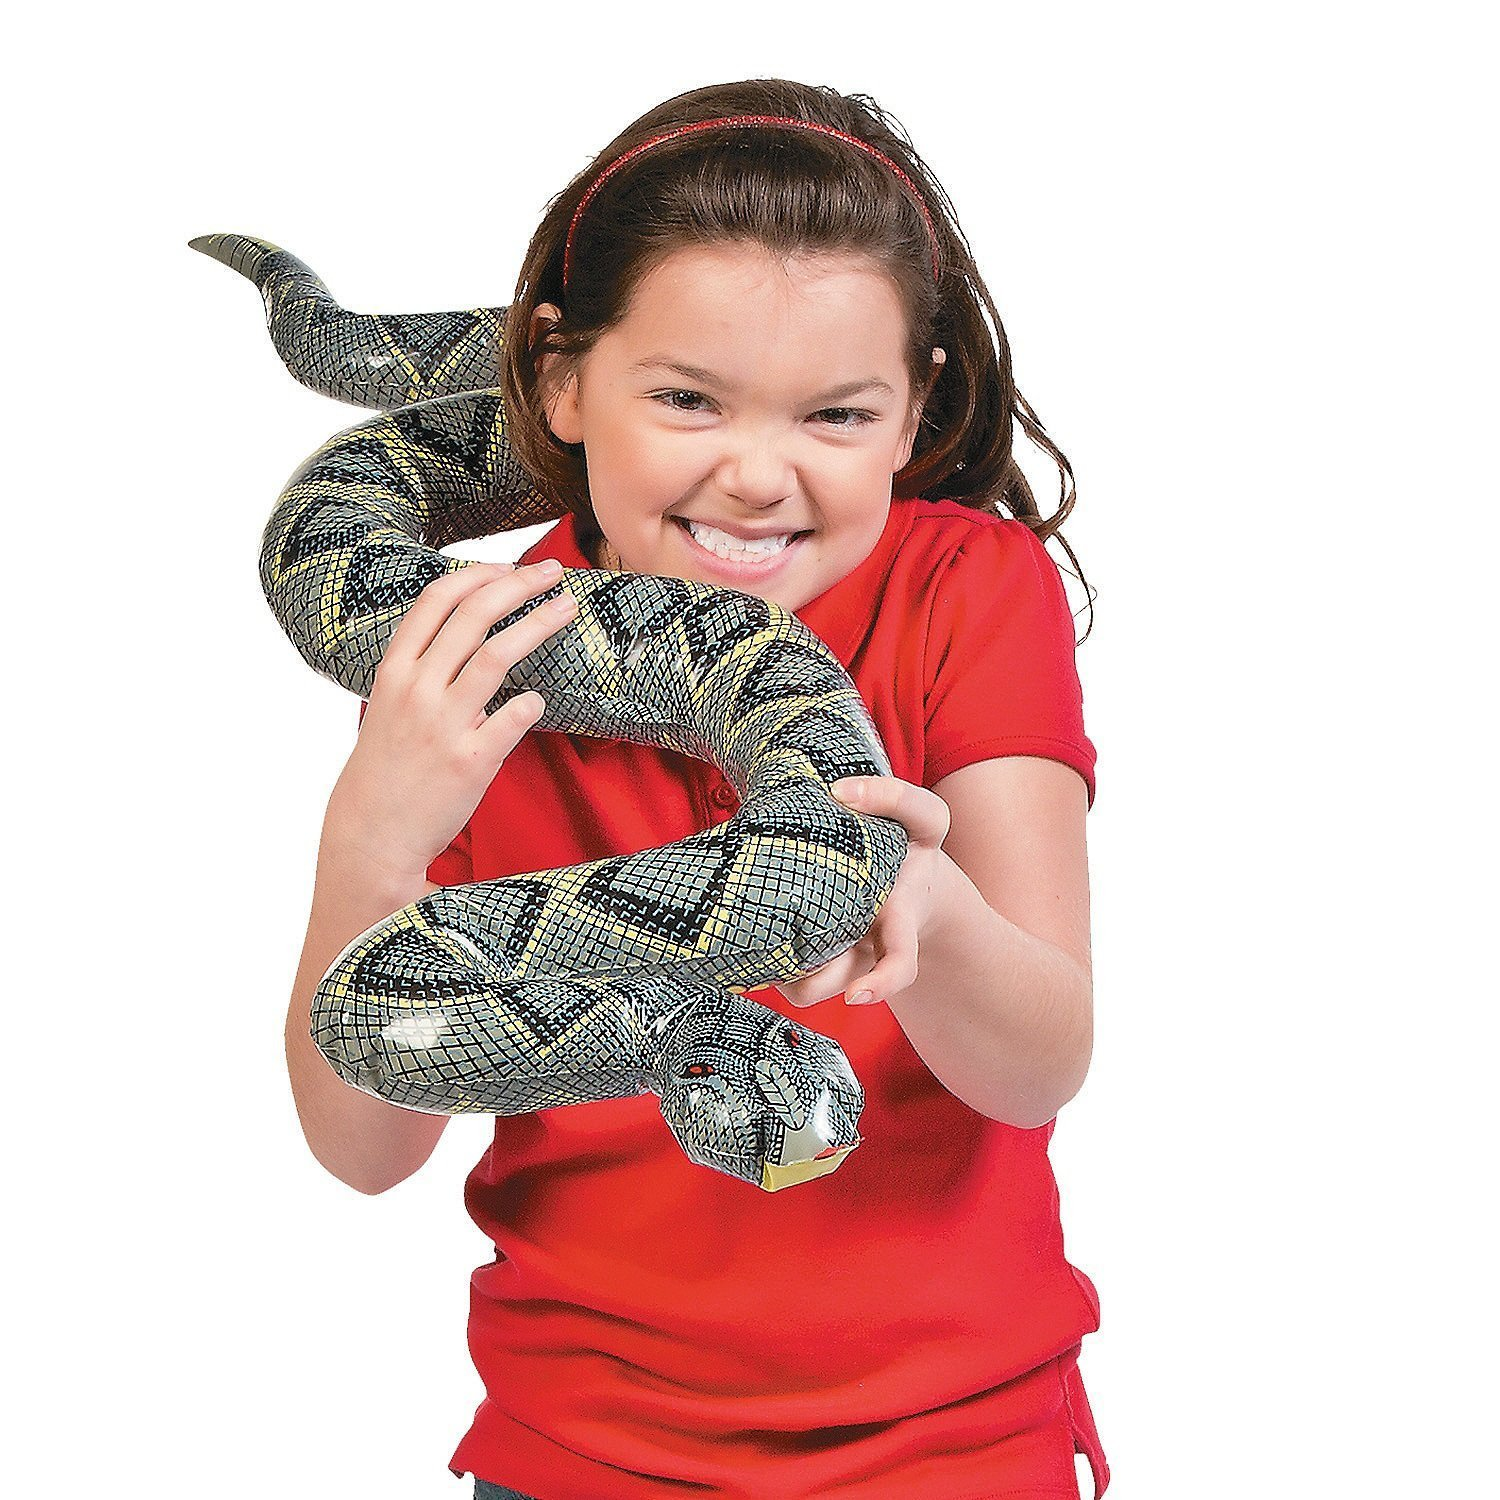 Fun Express Inflatable Snake Toy 38 x 4 Everready First Aid FNEIN-13675186